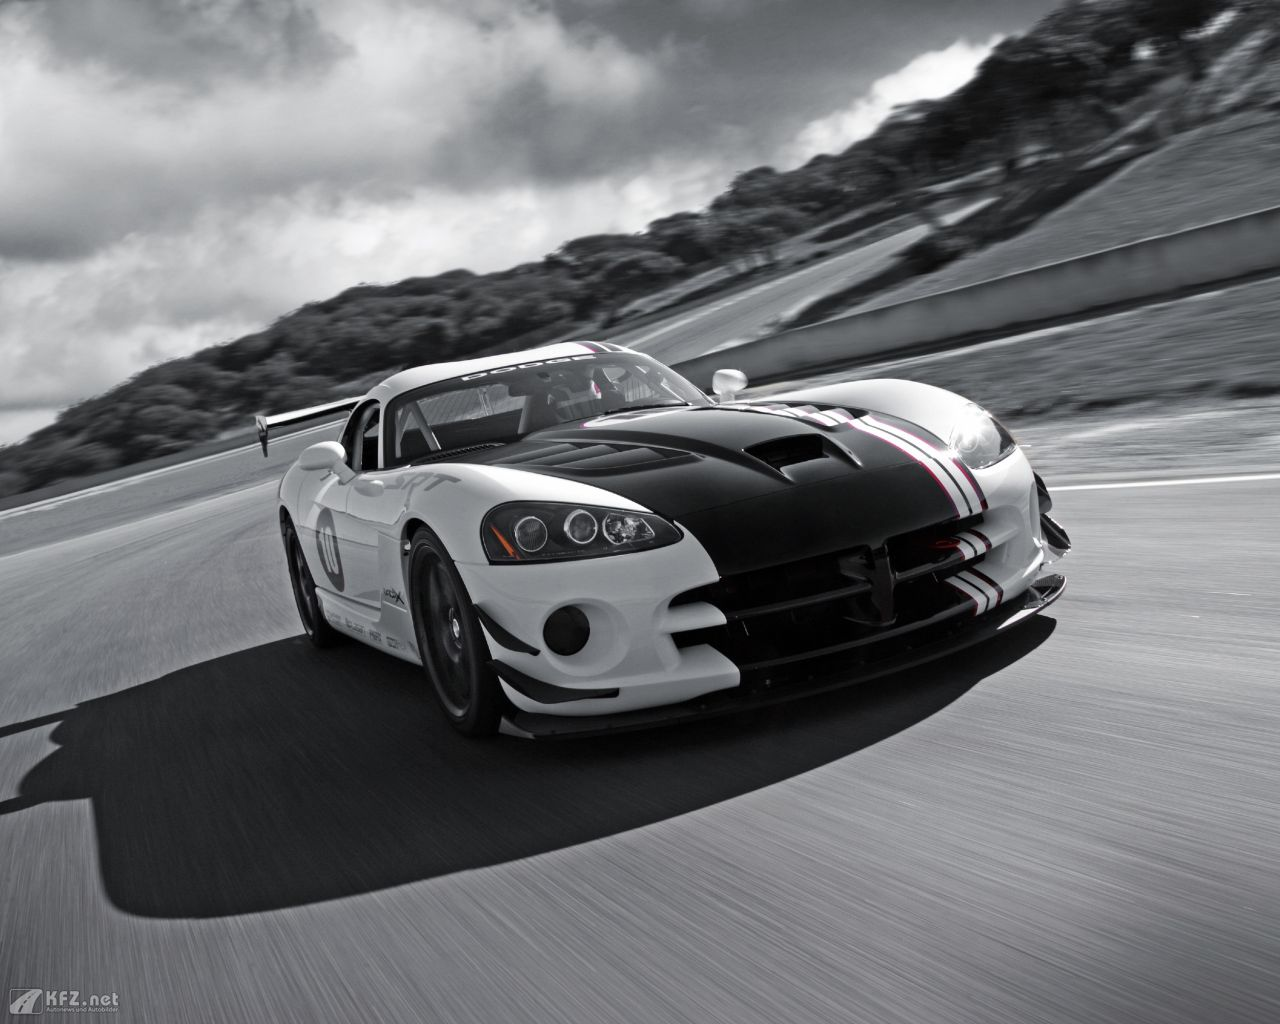 chrysler-dodge-viper-1280x1024-13